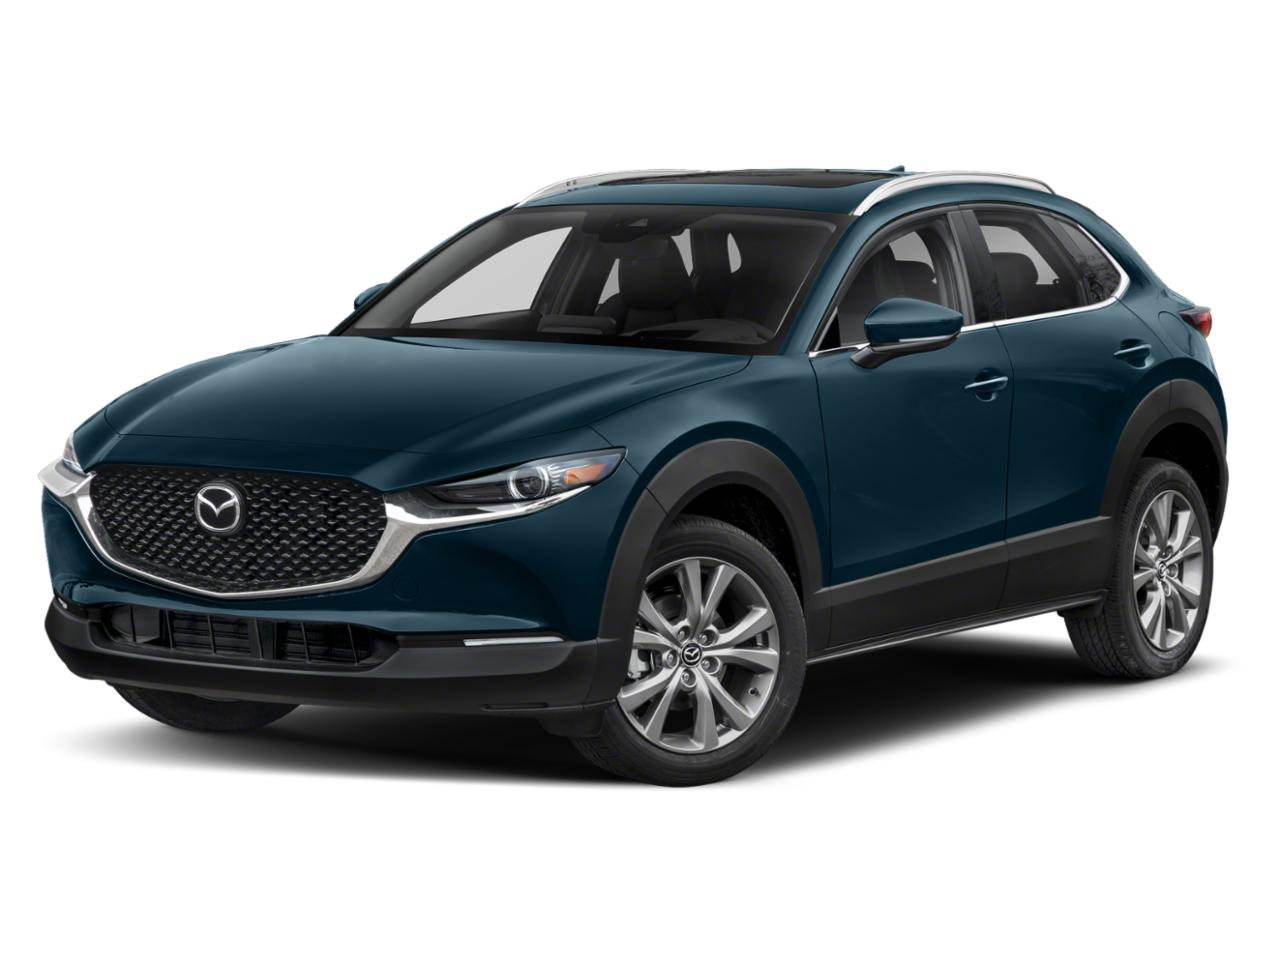 2021 Mazda CX-30 Vehicle Photo in Rockville, MD 20852